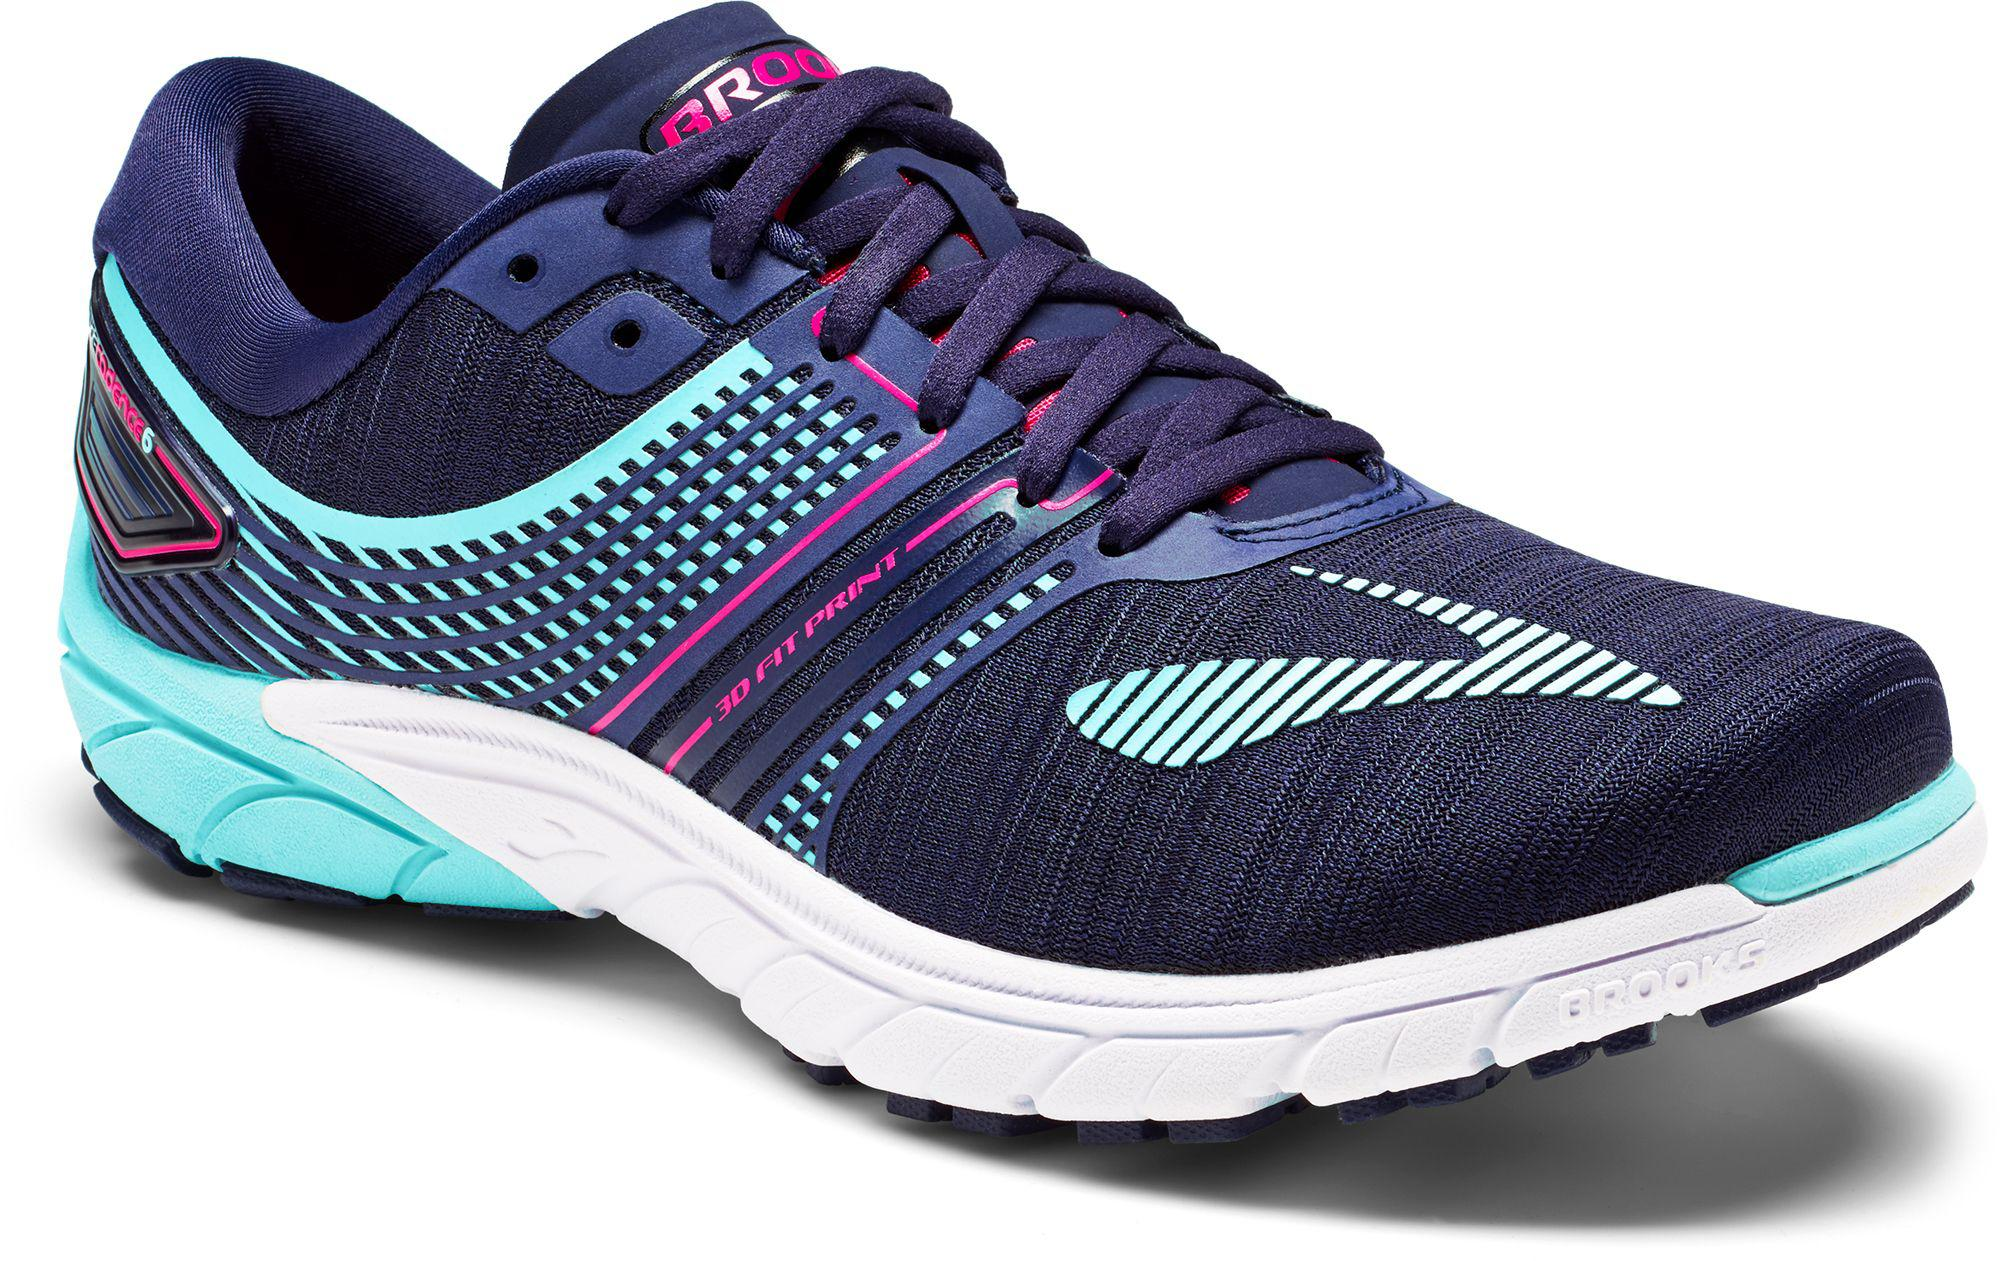 9a1eba10104 Lyst - Brooks Purecadence 6 Running Shoes in Blue for Men